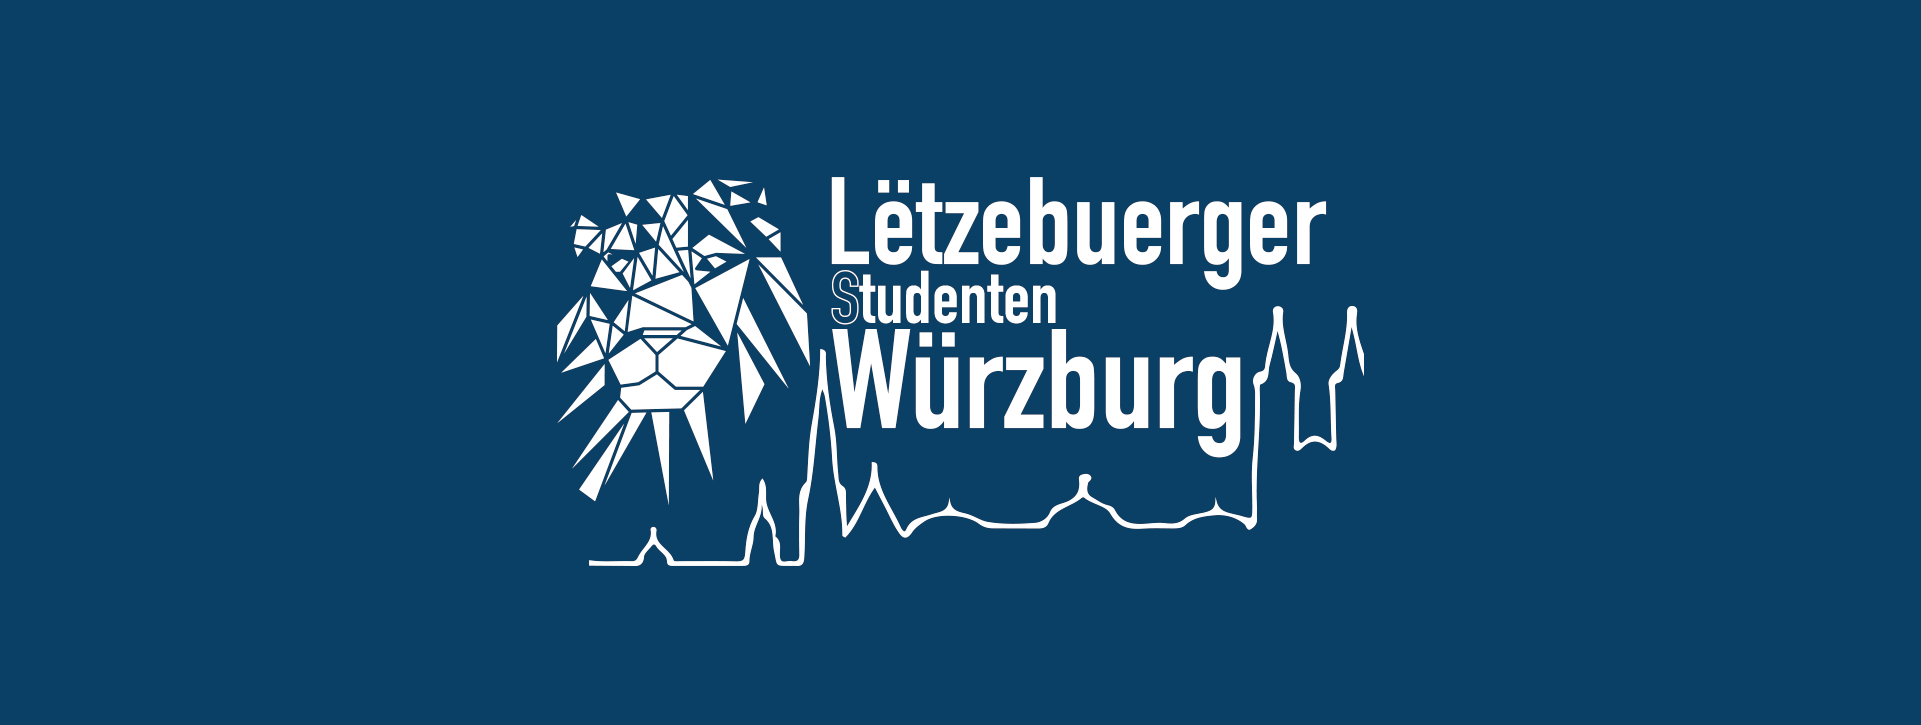 Corporate Design Luxemburger Studenten in Würzburg